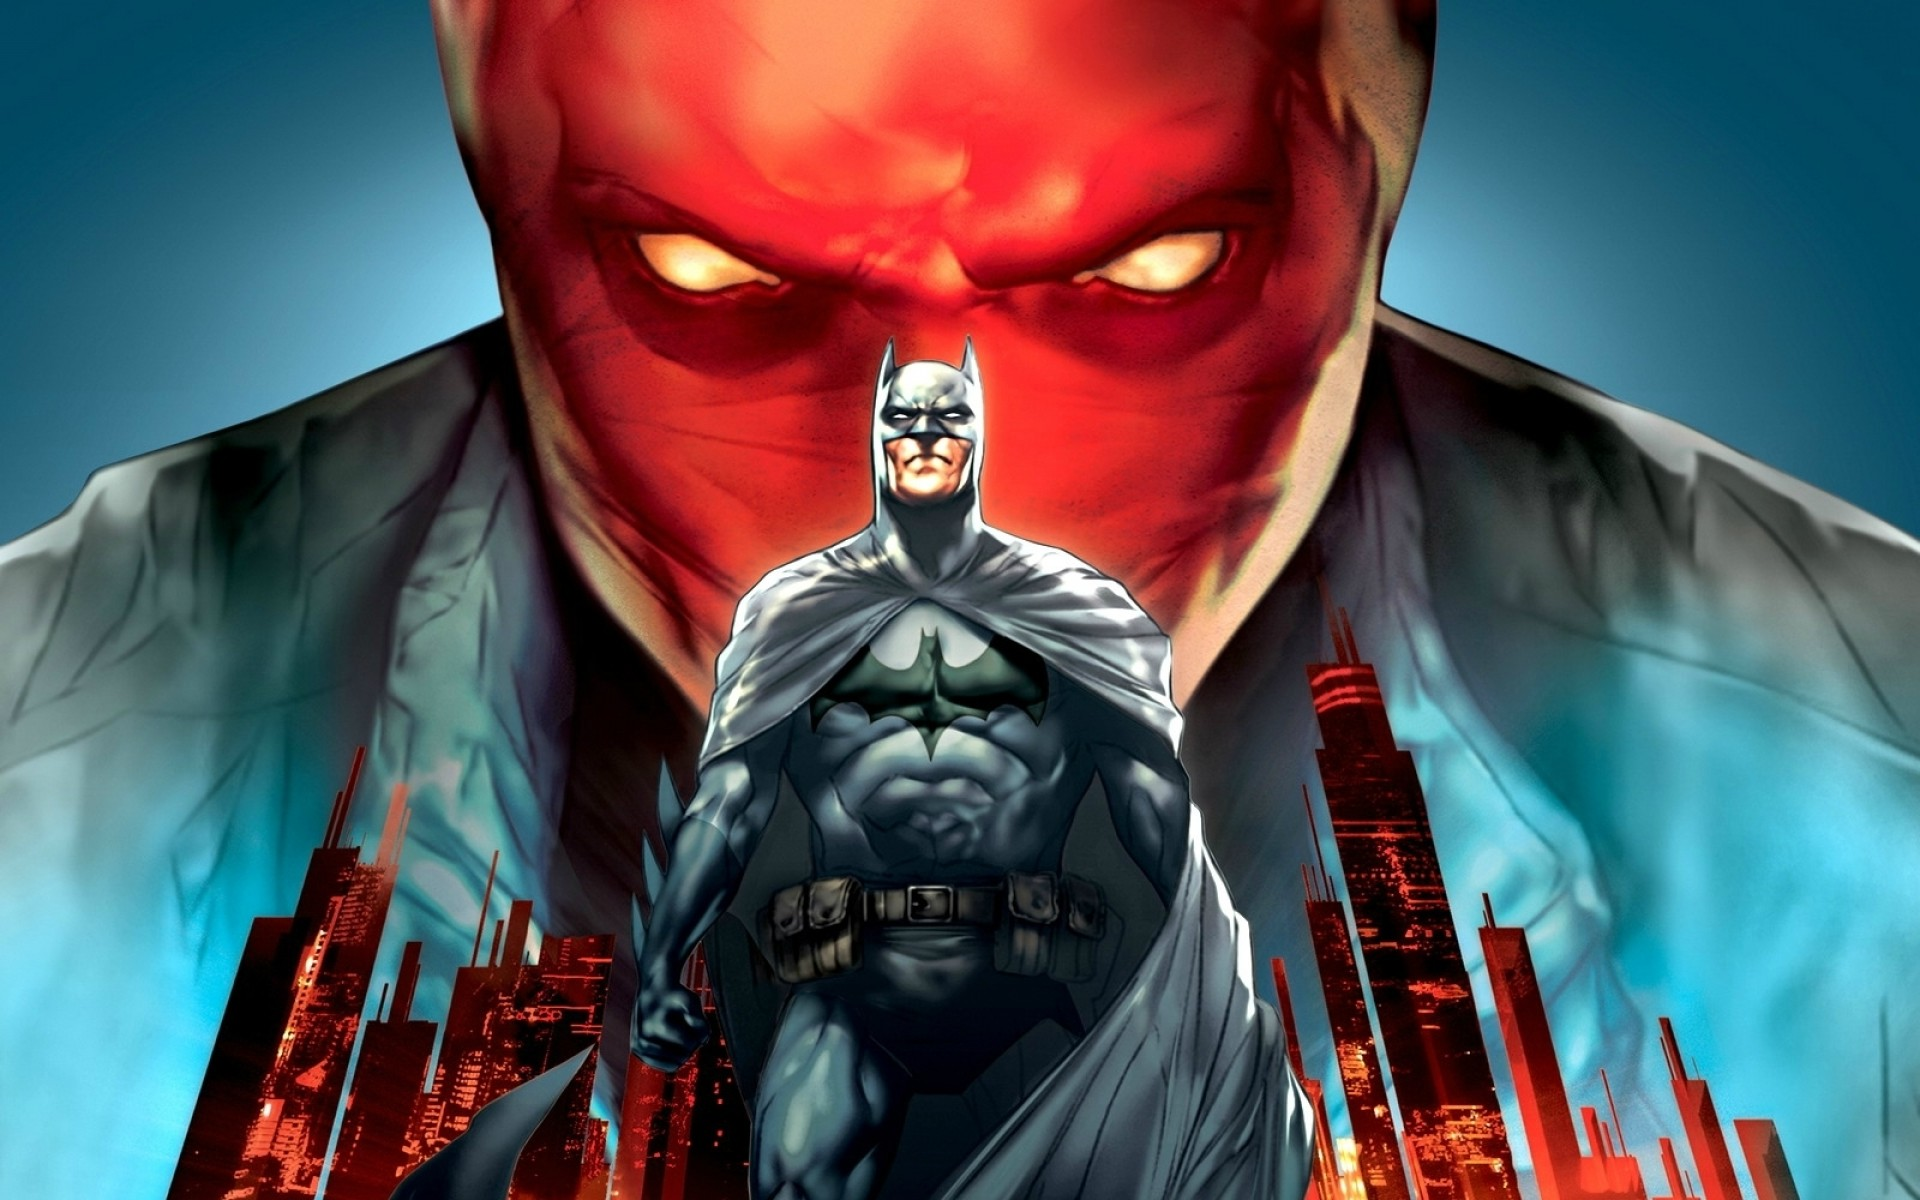 1920x1200 Batman, DC Comics, Superhero, Bruce Wayne, Jason Todd, Red Hood Wallpapers  HD / Desktop and Mobile Backgrounds